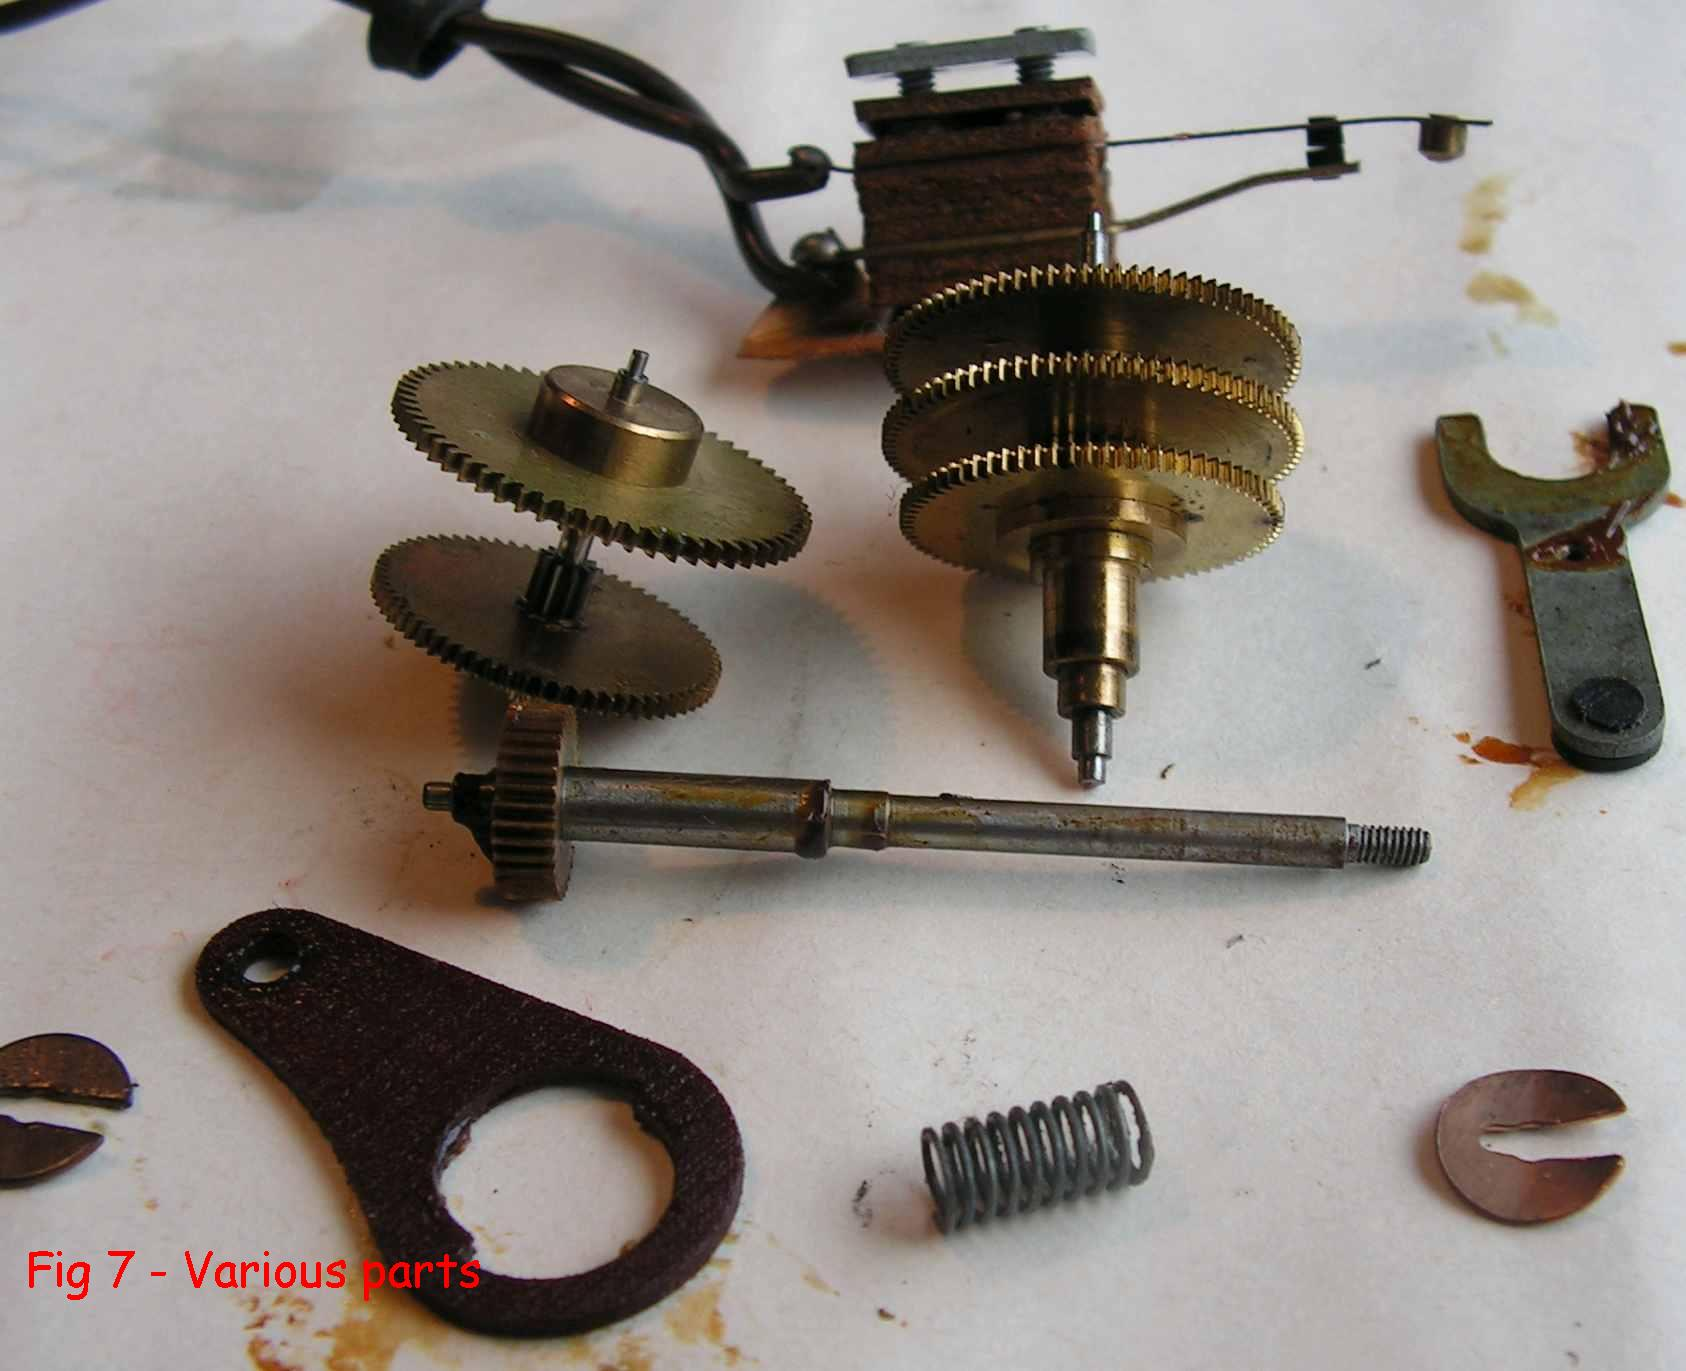 Fig 7 - various parts removed